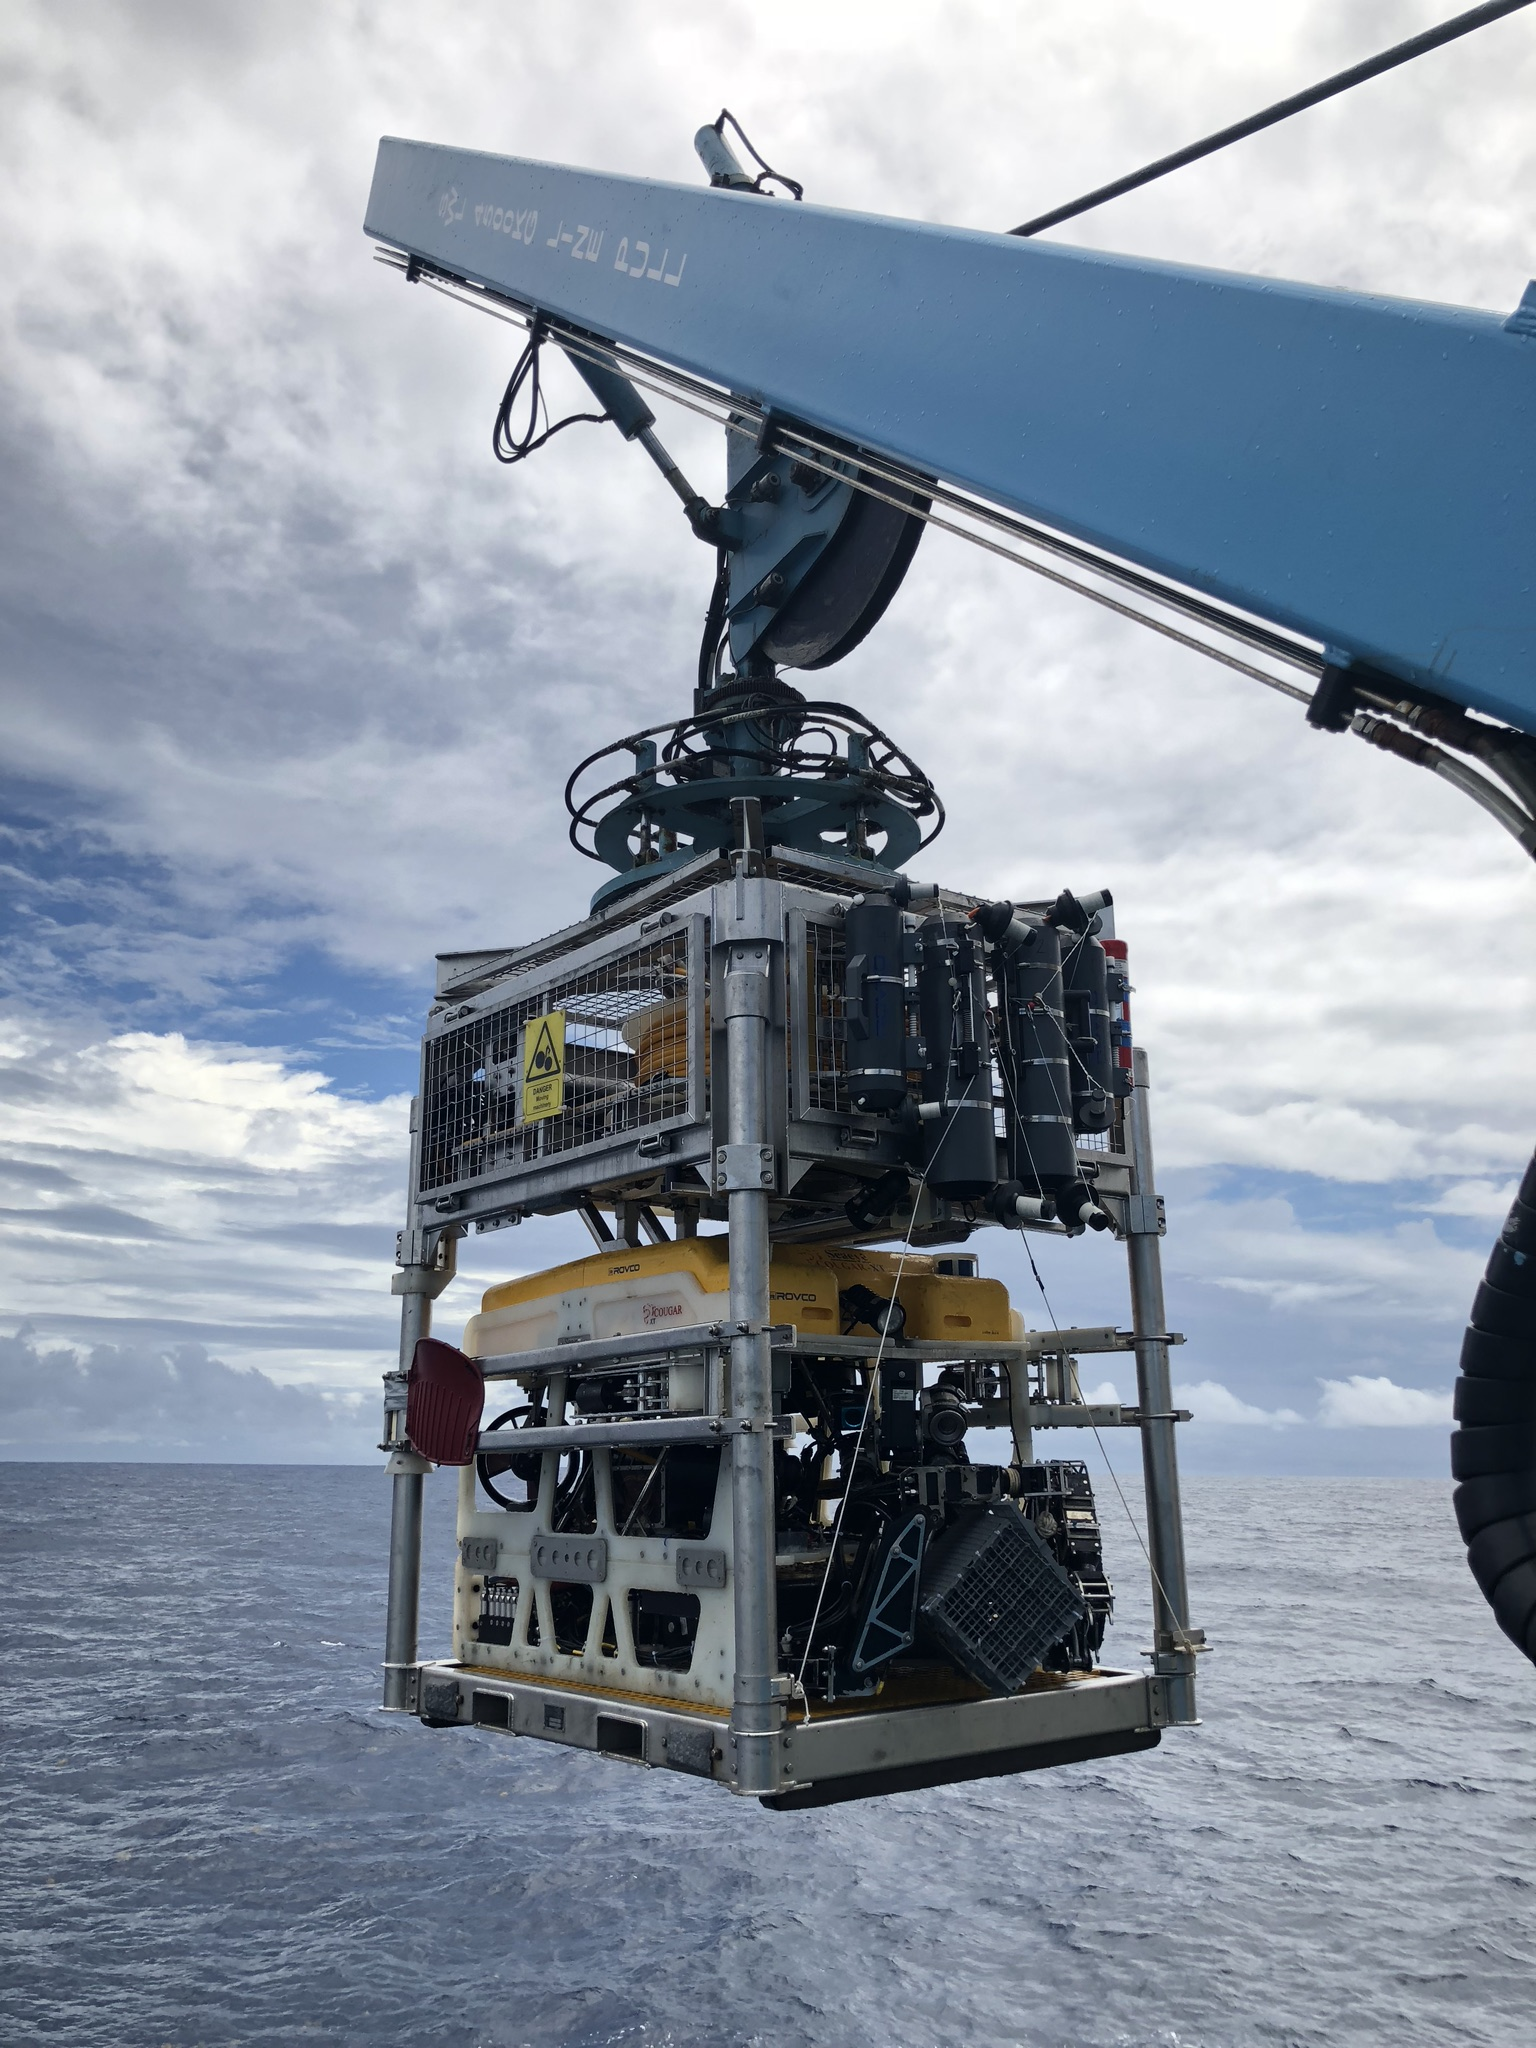 Rovco ROV Greenpeace Reef Project